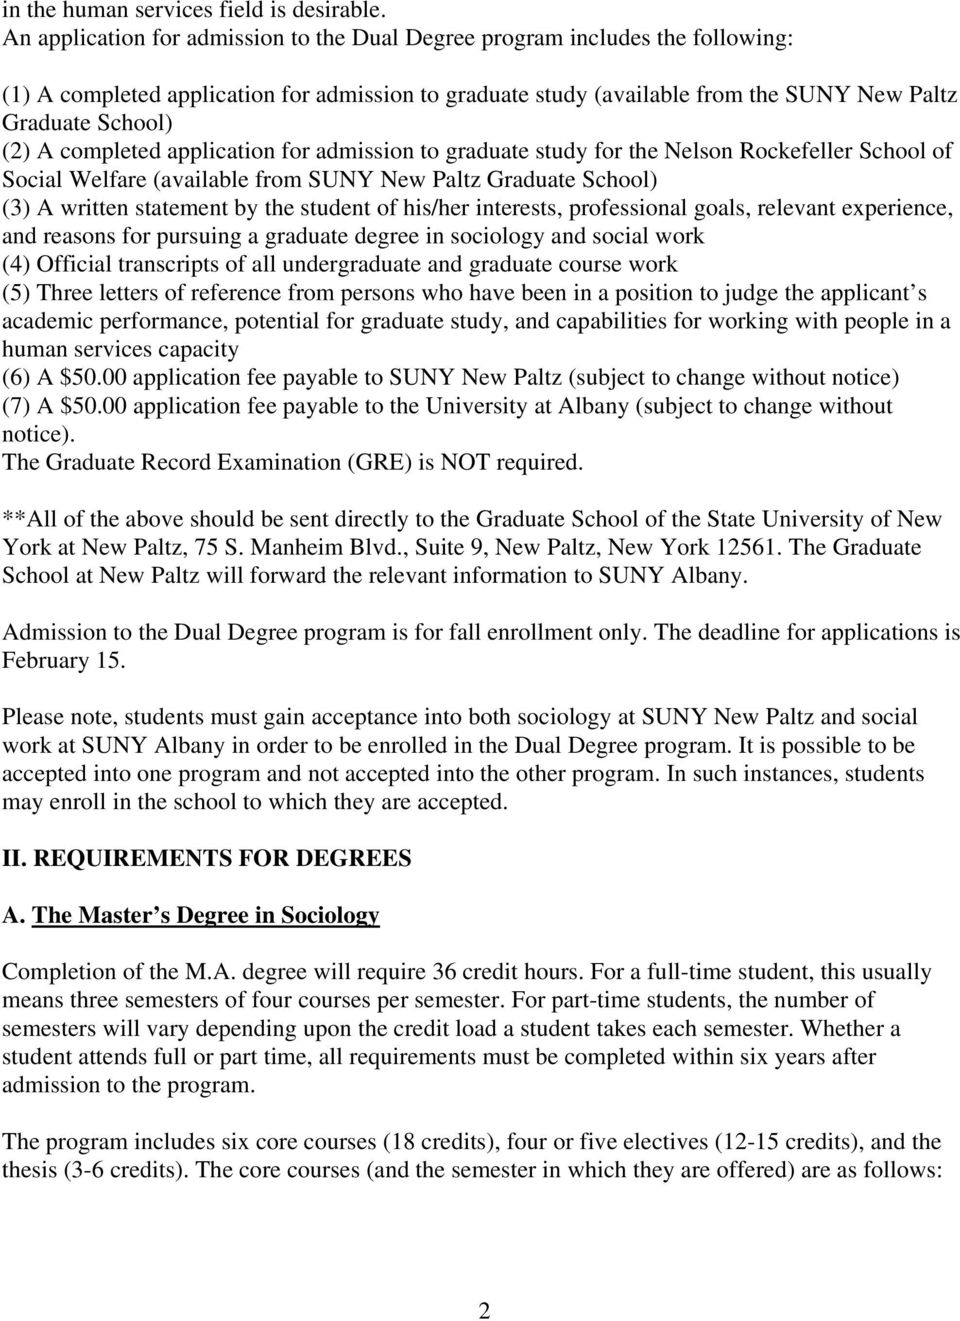 completed application for admission to graduate study for the Nelson Rockefeller School of Social Welfare (available from SUNY New Paltz Graduate School) (3) A written statement by the student of